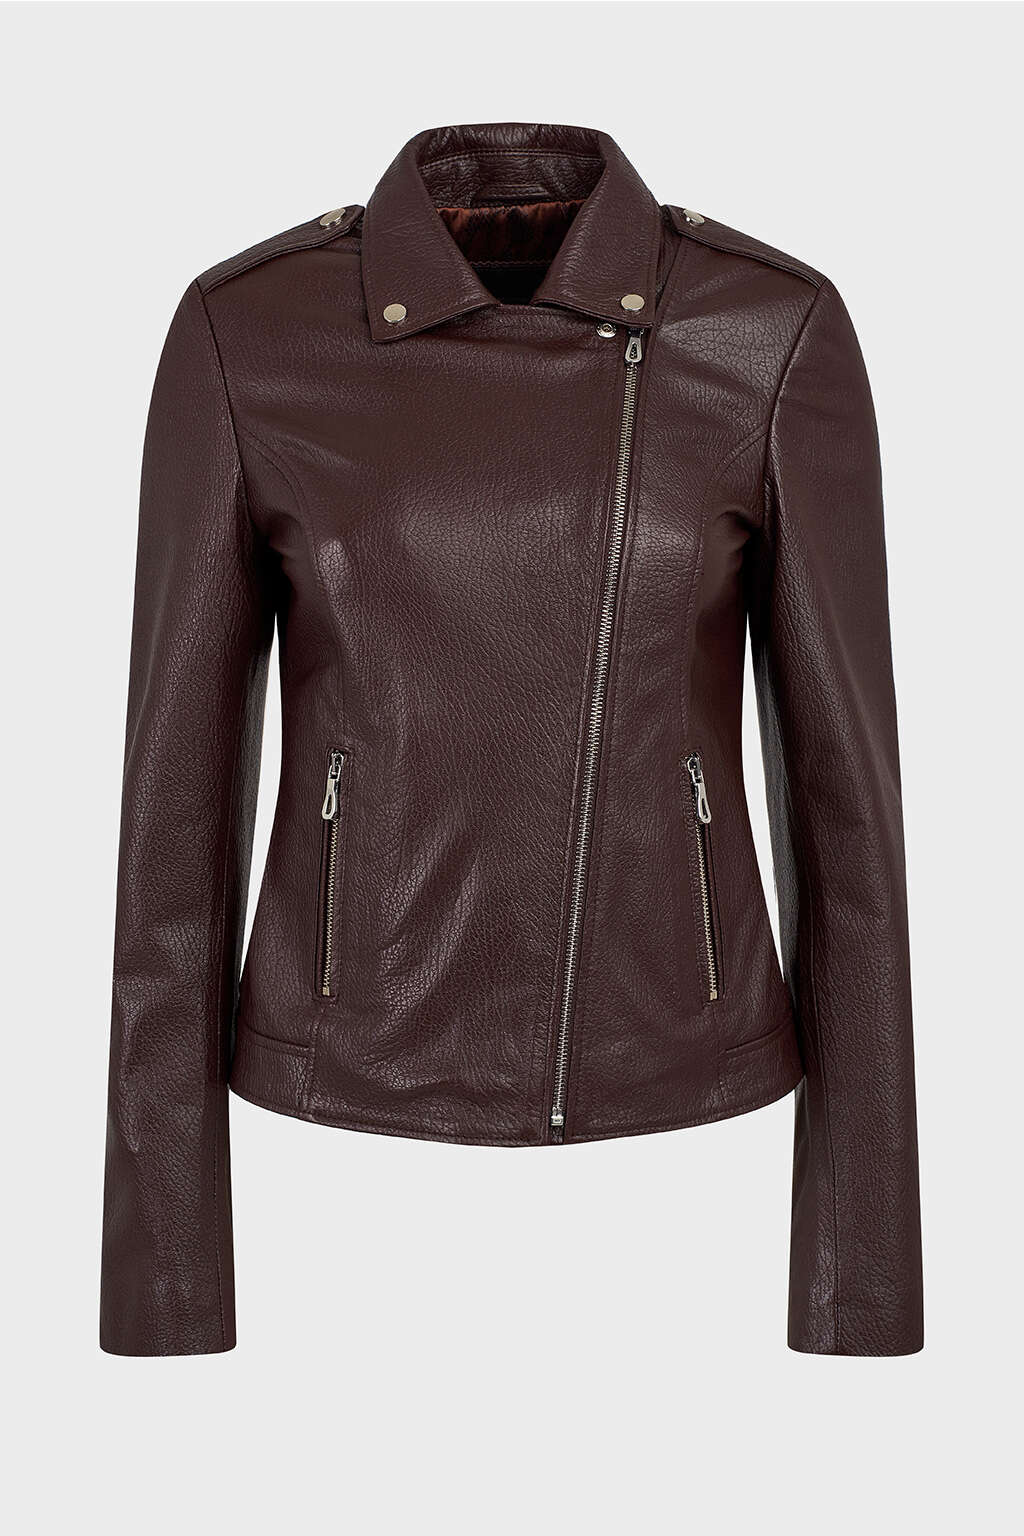 Front of Brown Detailed Collar Biker Leather Jacket